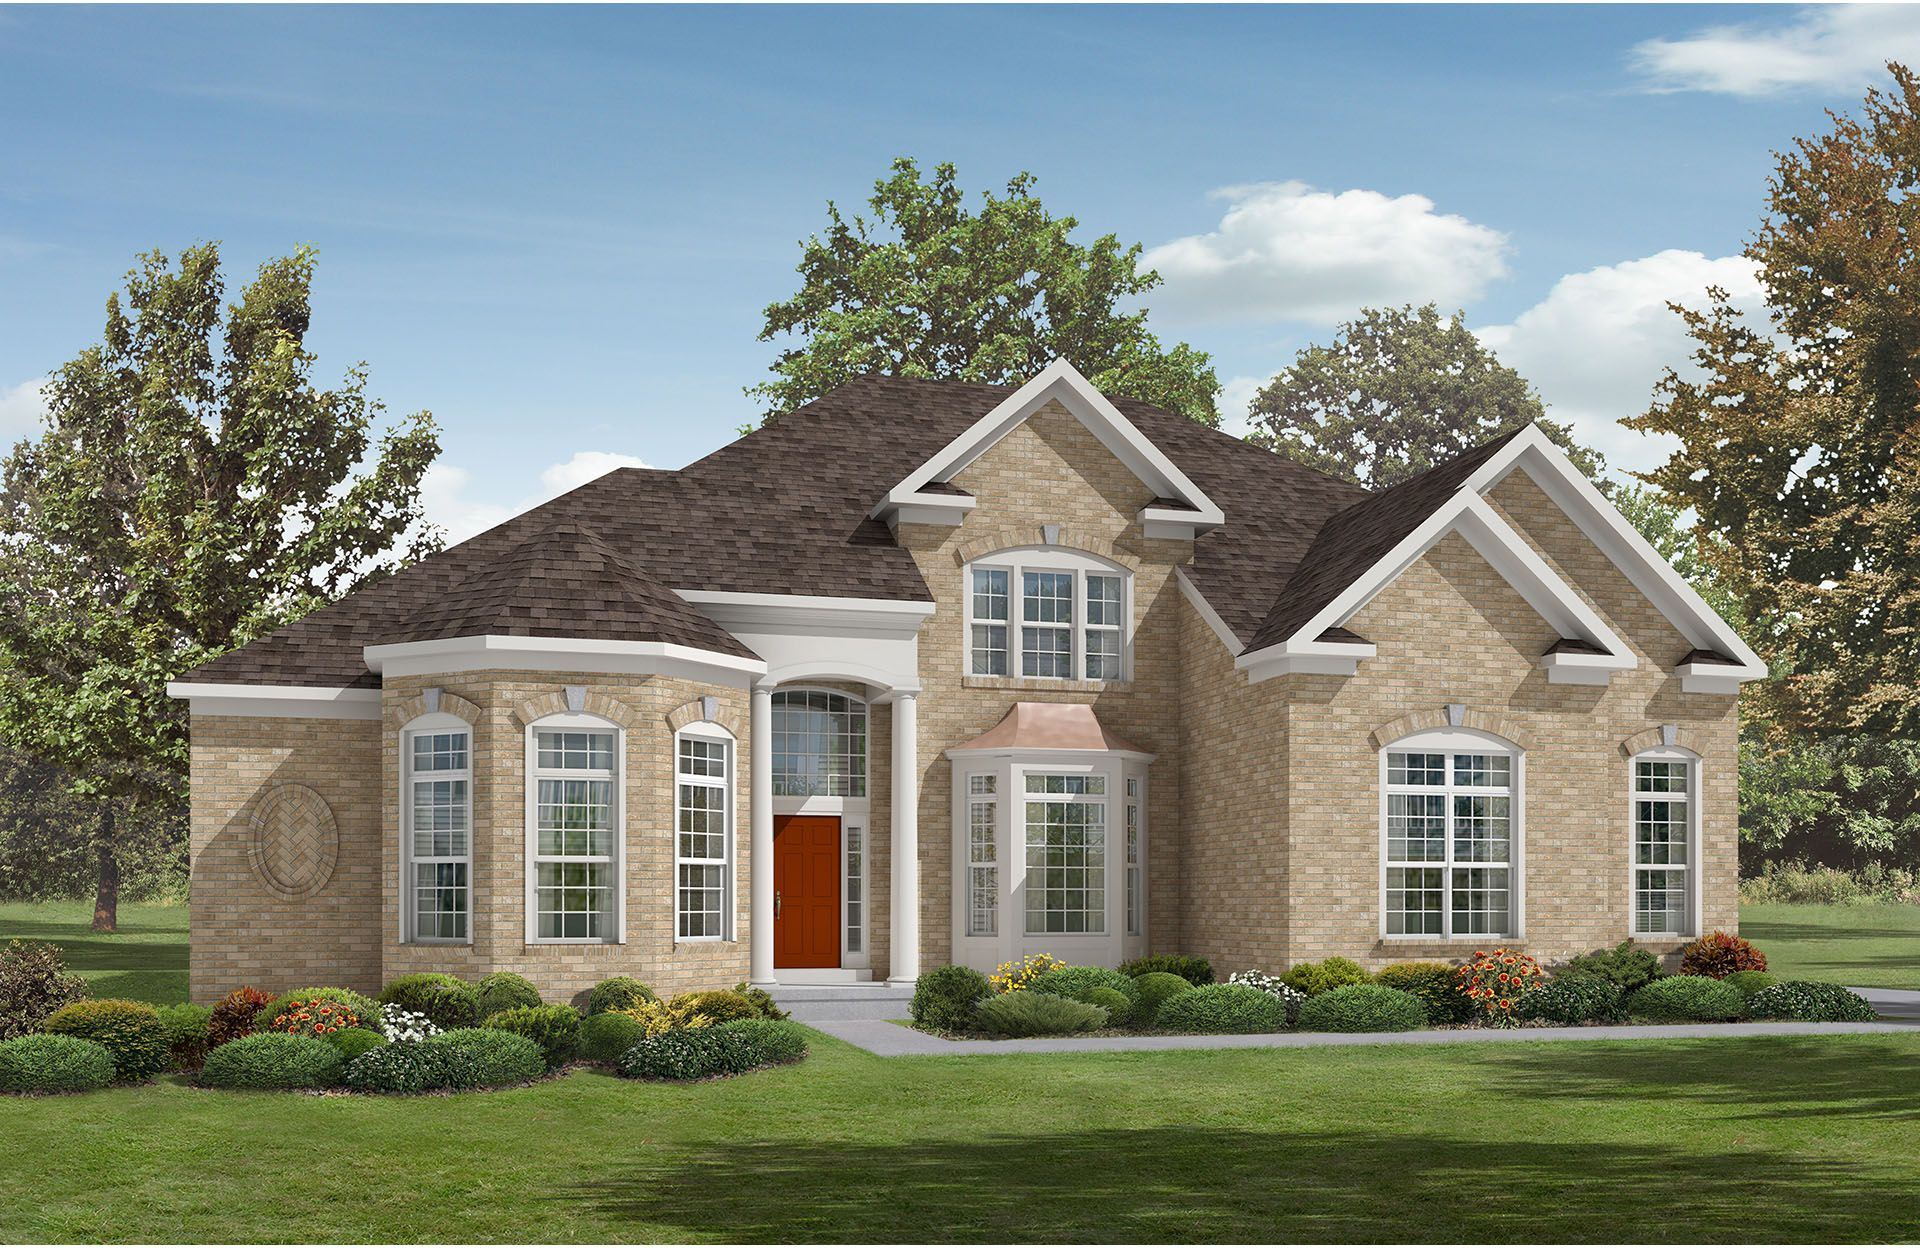 Design Gallery - Indy: Design Gallery Homes - Indianapolis, IN